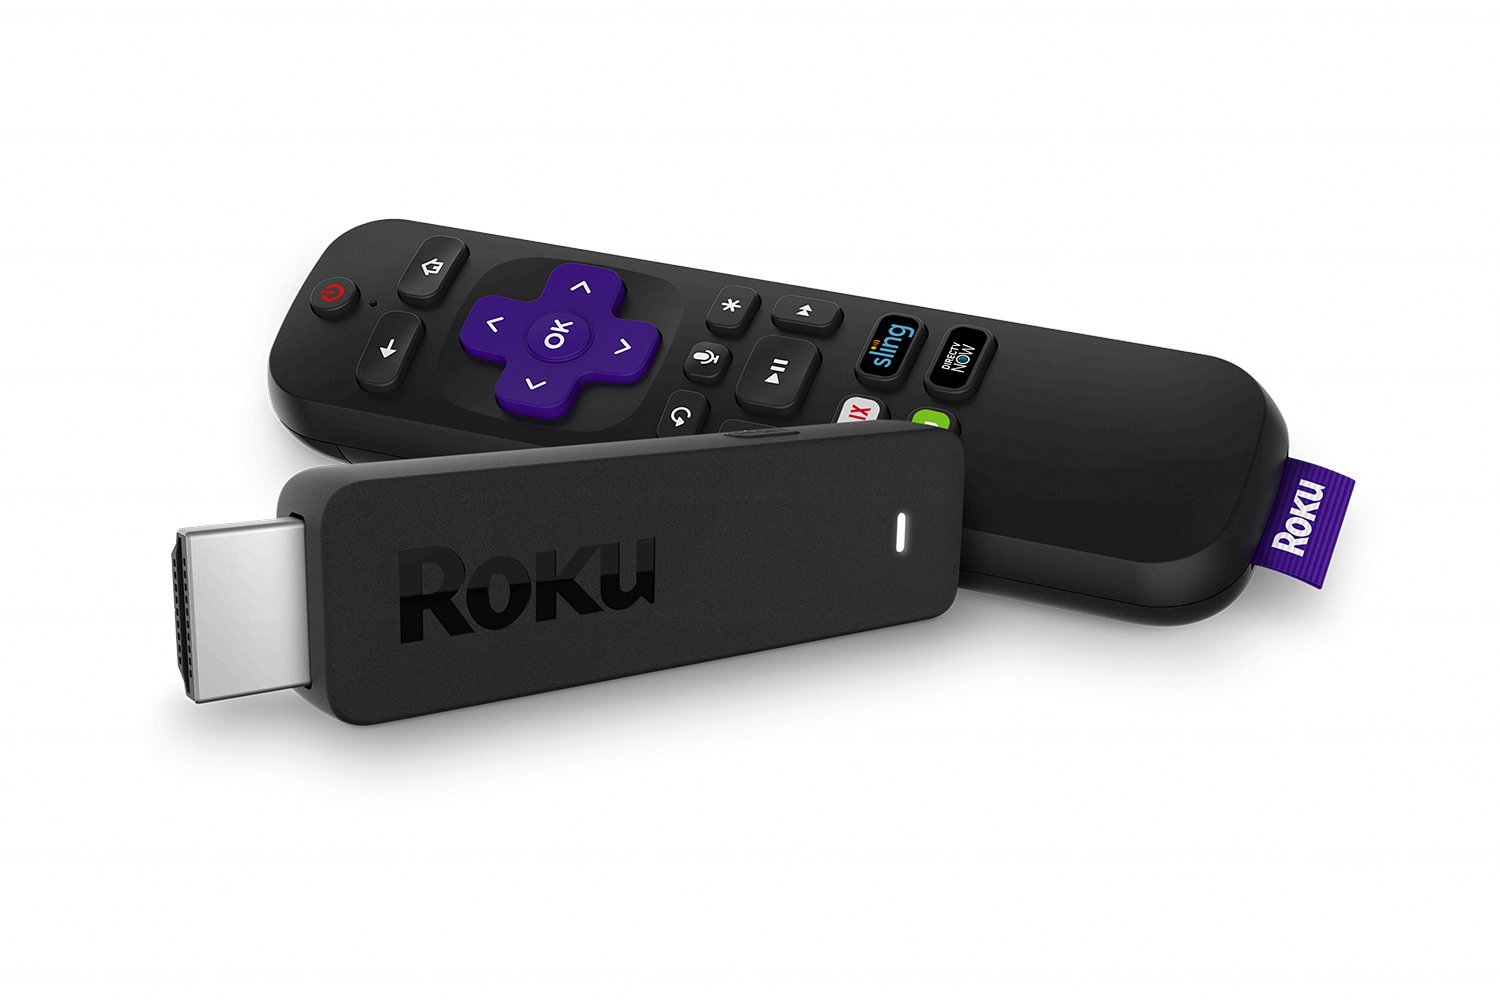 Roku Streaming Stick | Portable, Power-Packed Player with Voice Remote with TV Power and Volume by Roku